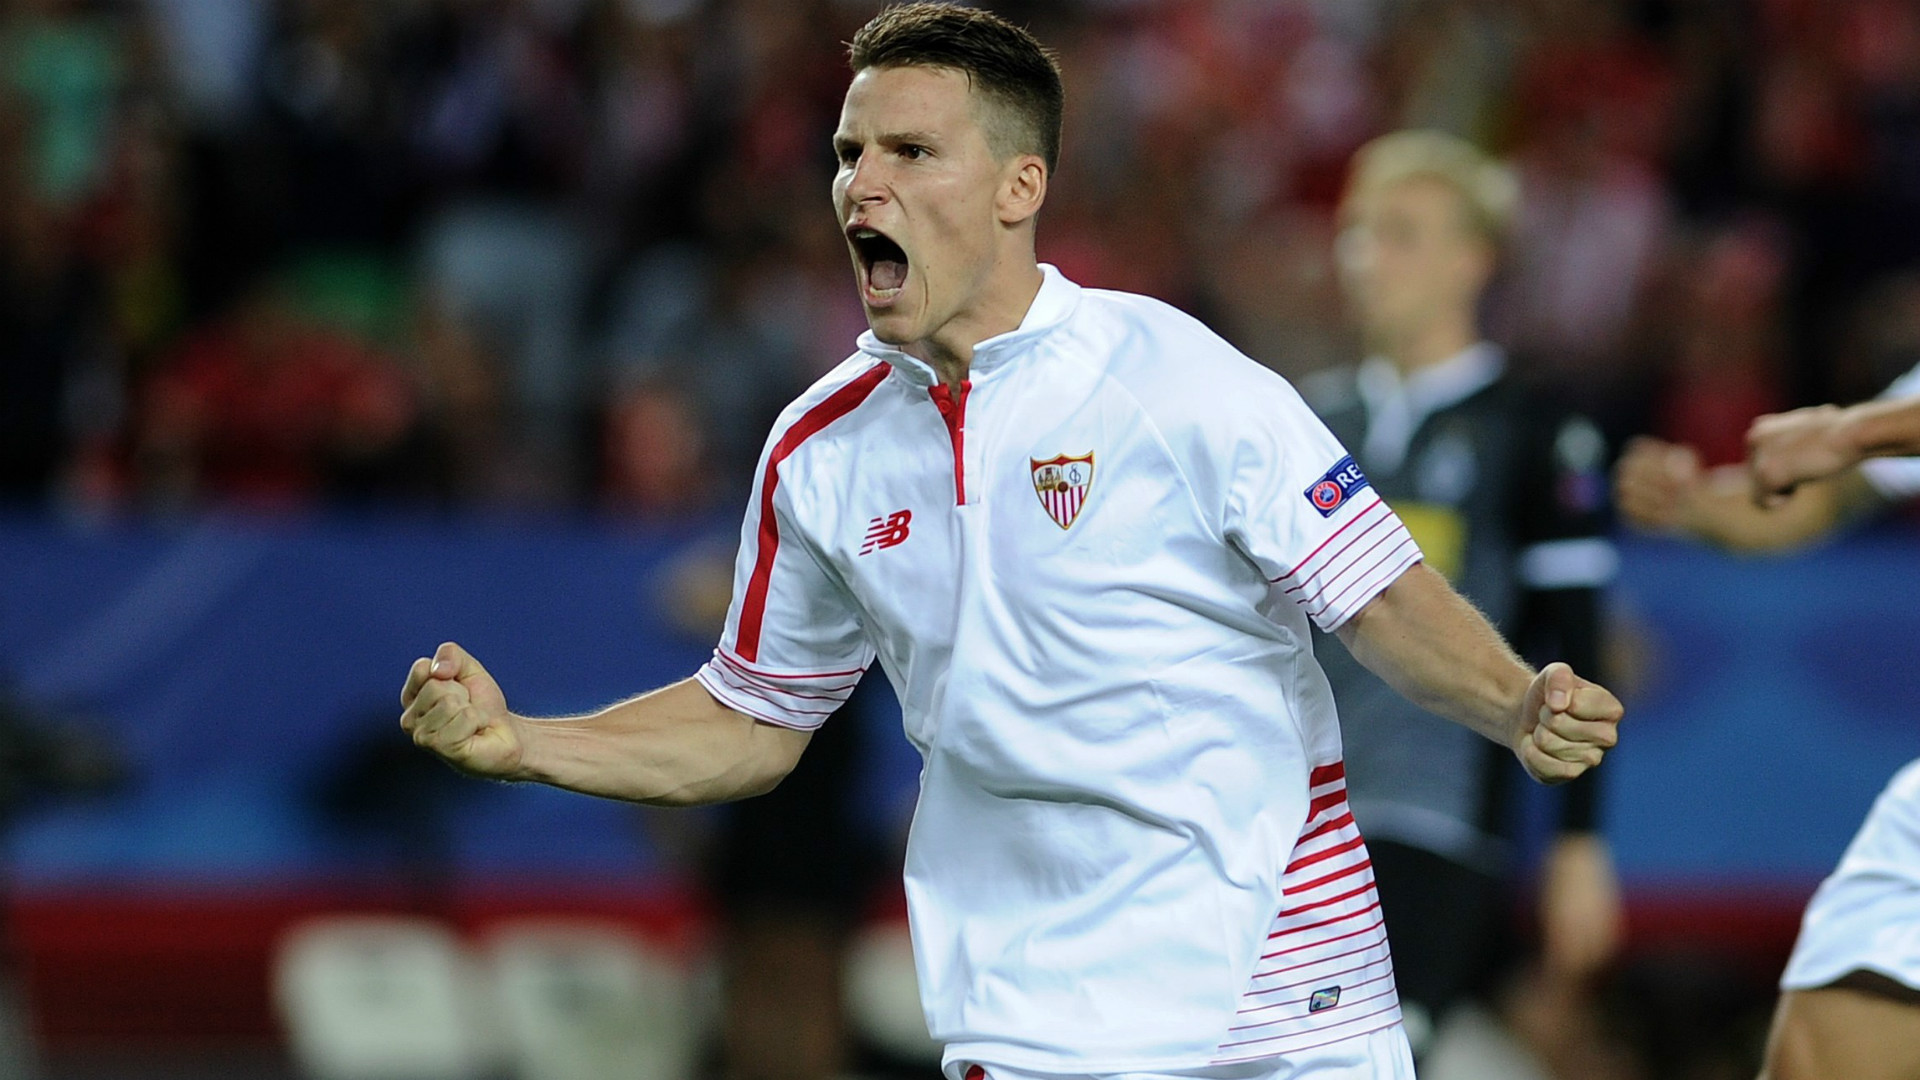 Video: Sevilla vs Sporting Gijon